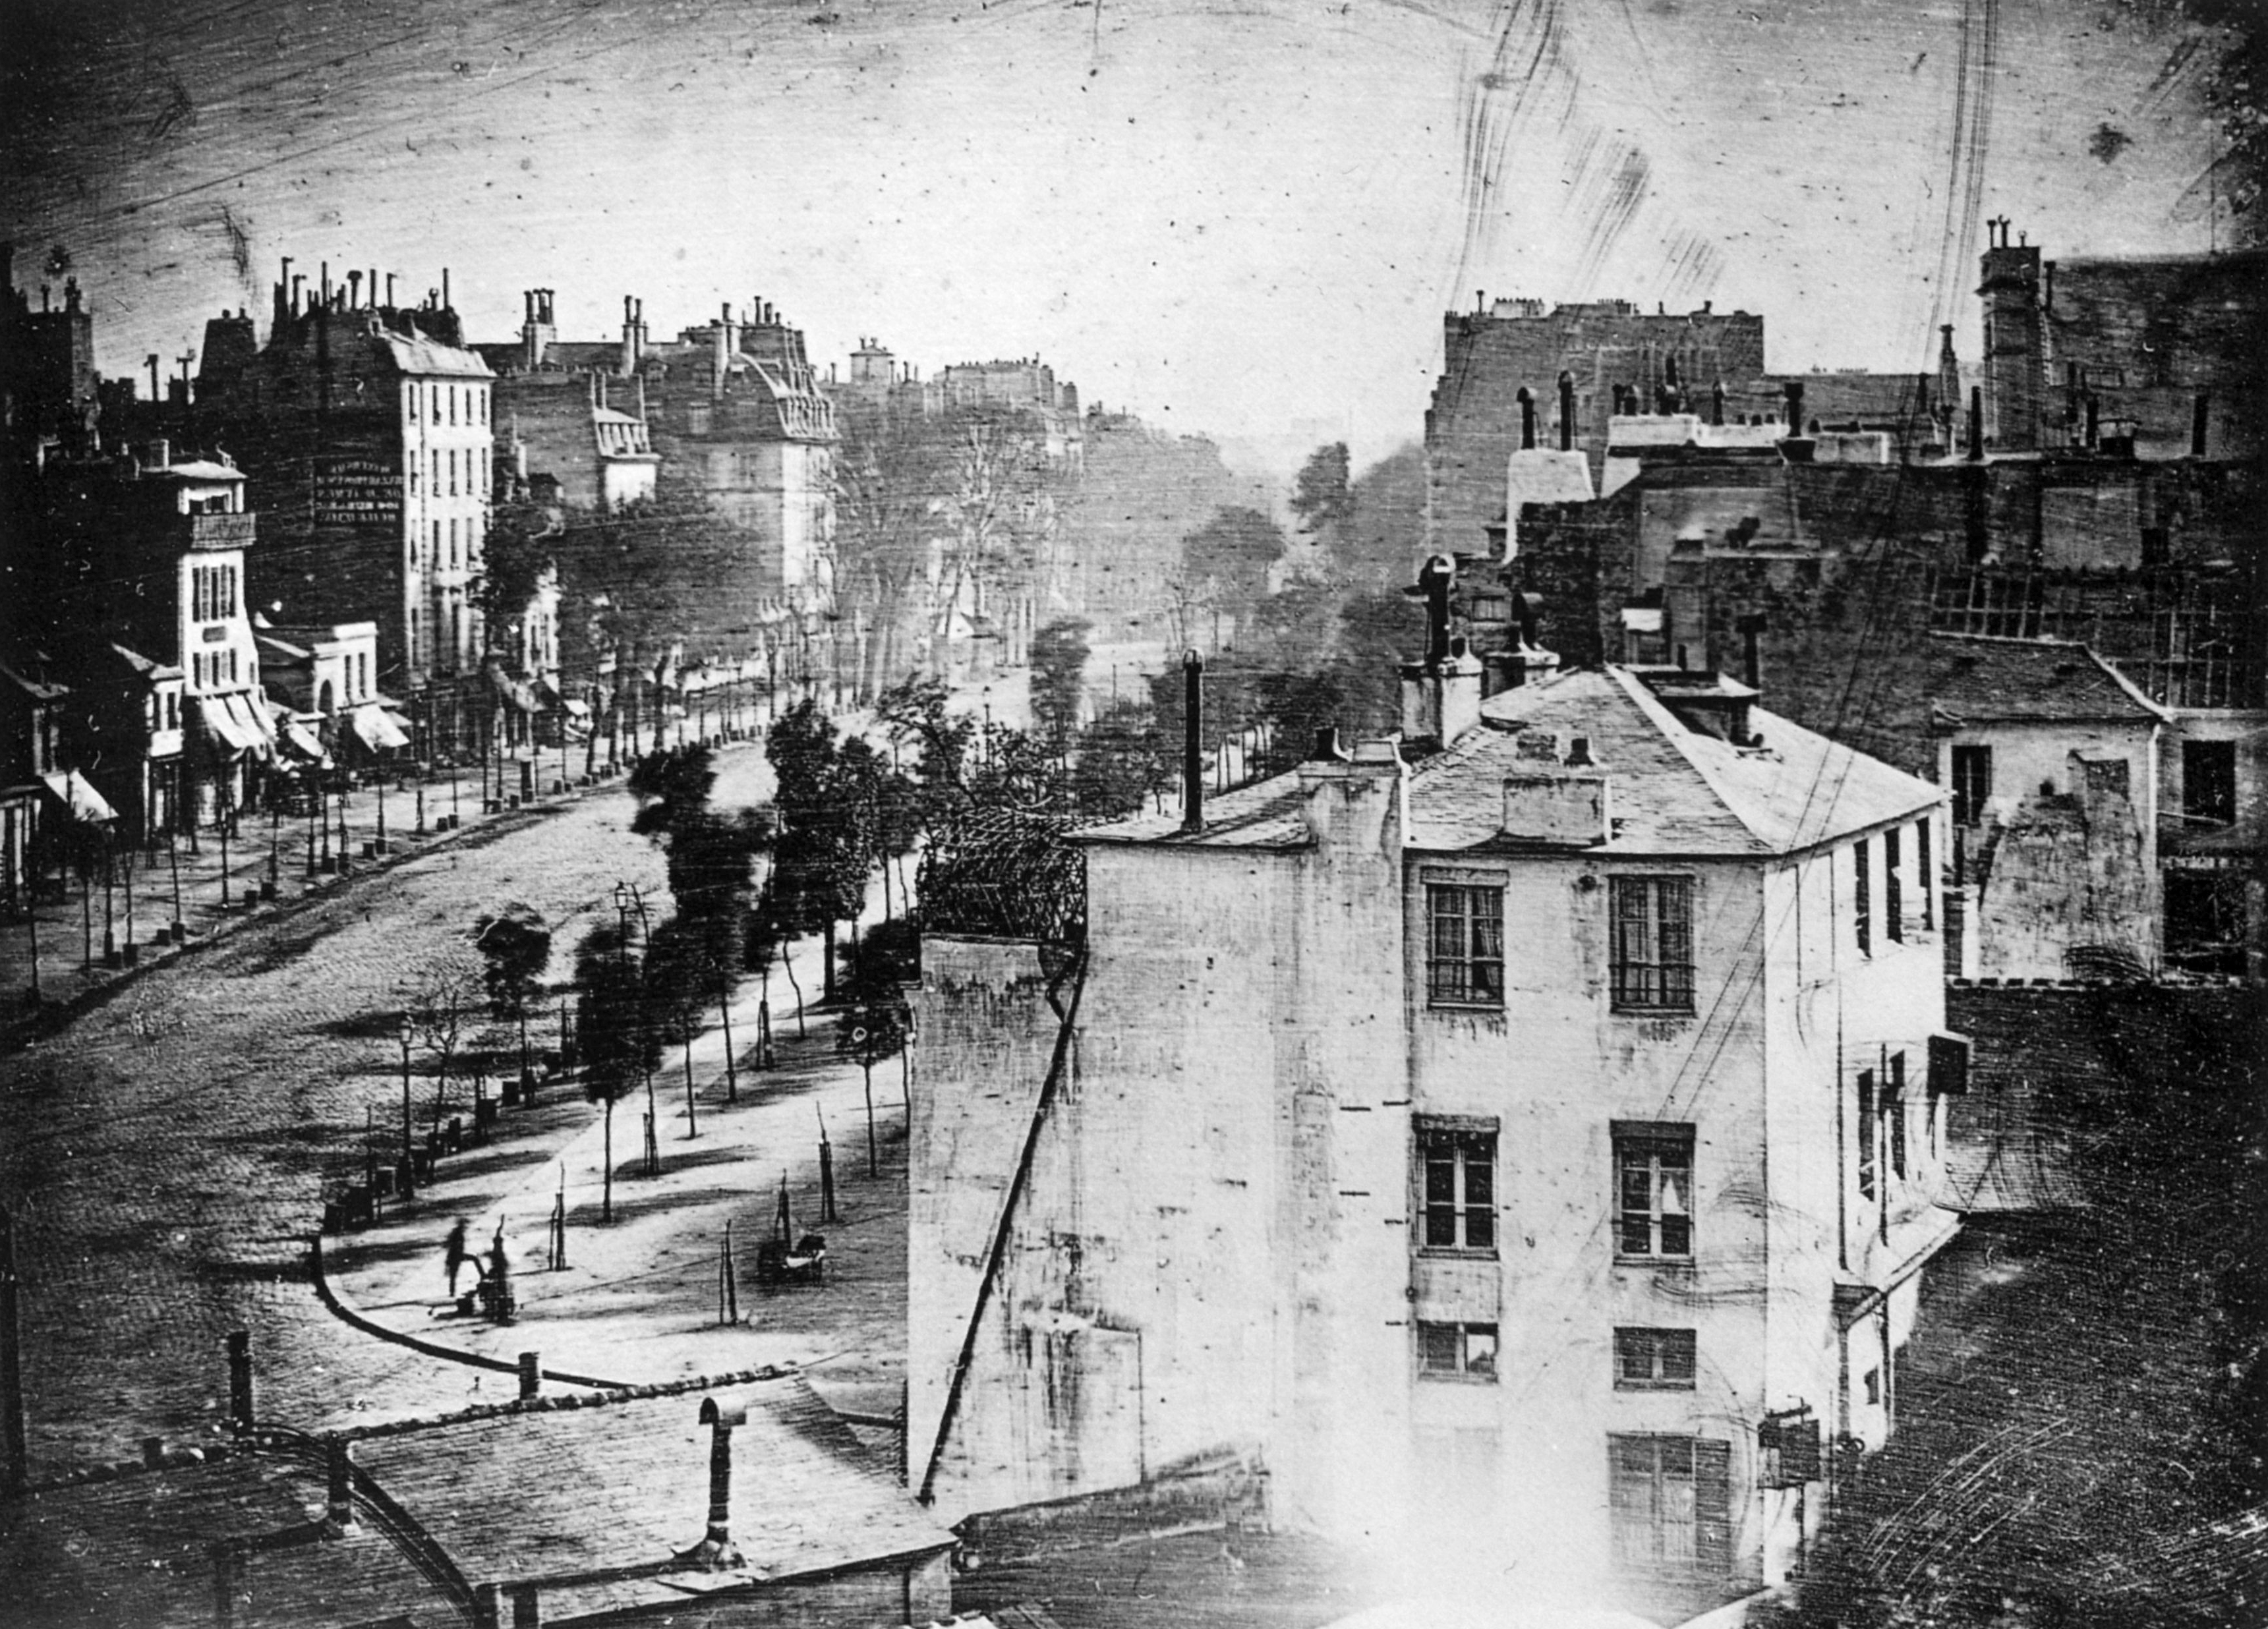 timeline of photography technology first photograph including a person on pavement at lower left by daguerre 1838